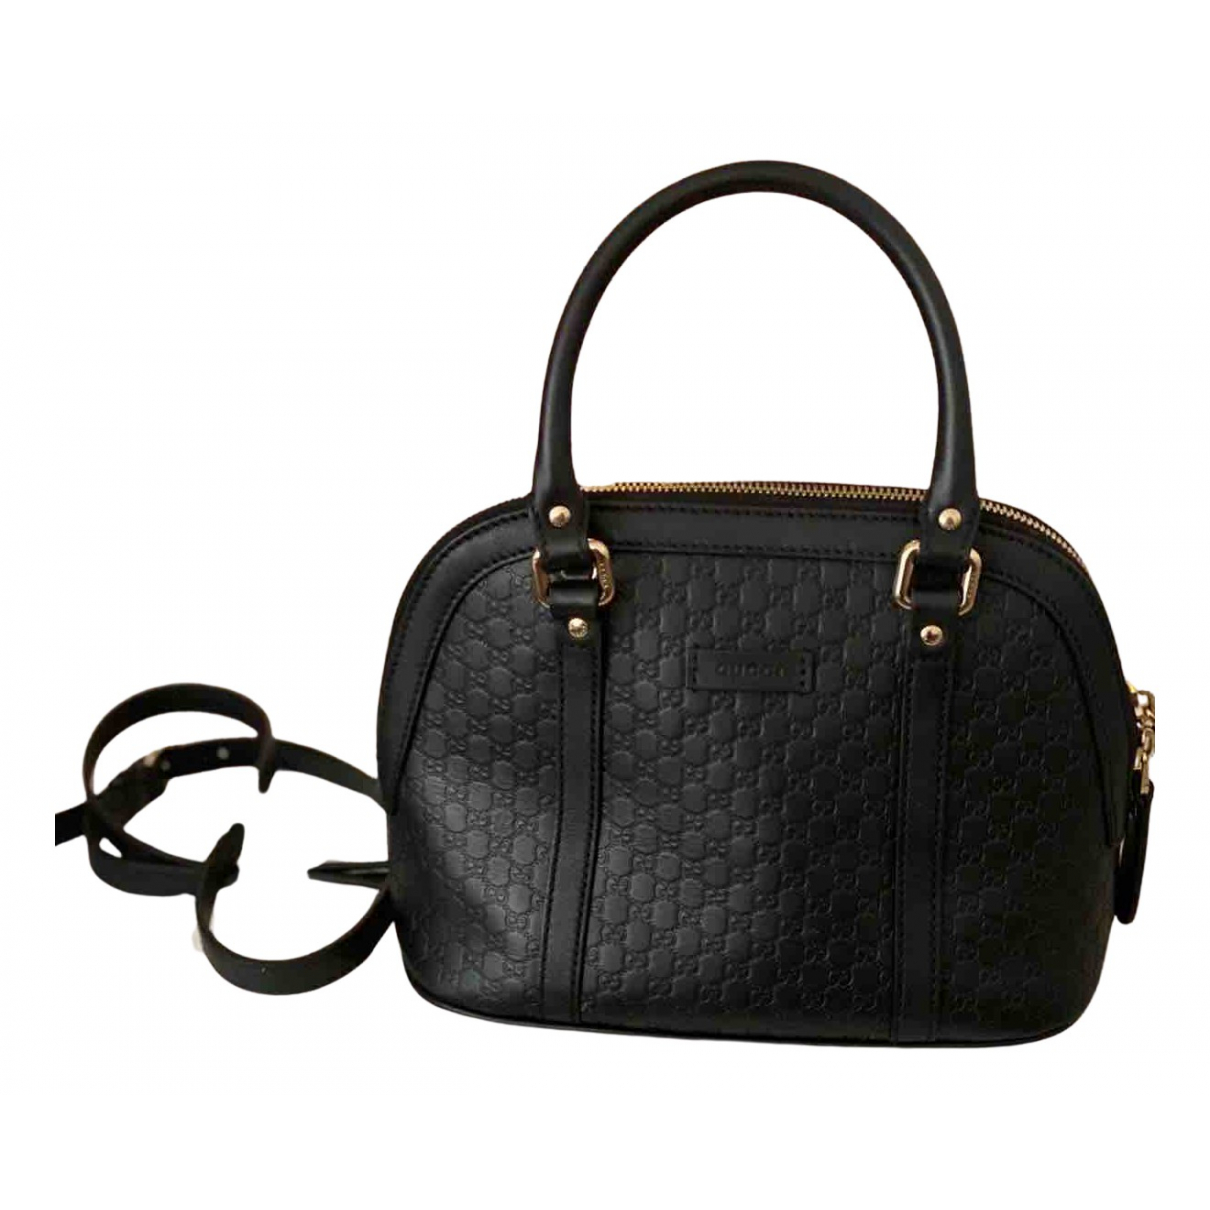 Gucci N Black Leather handbag for Women N